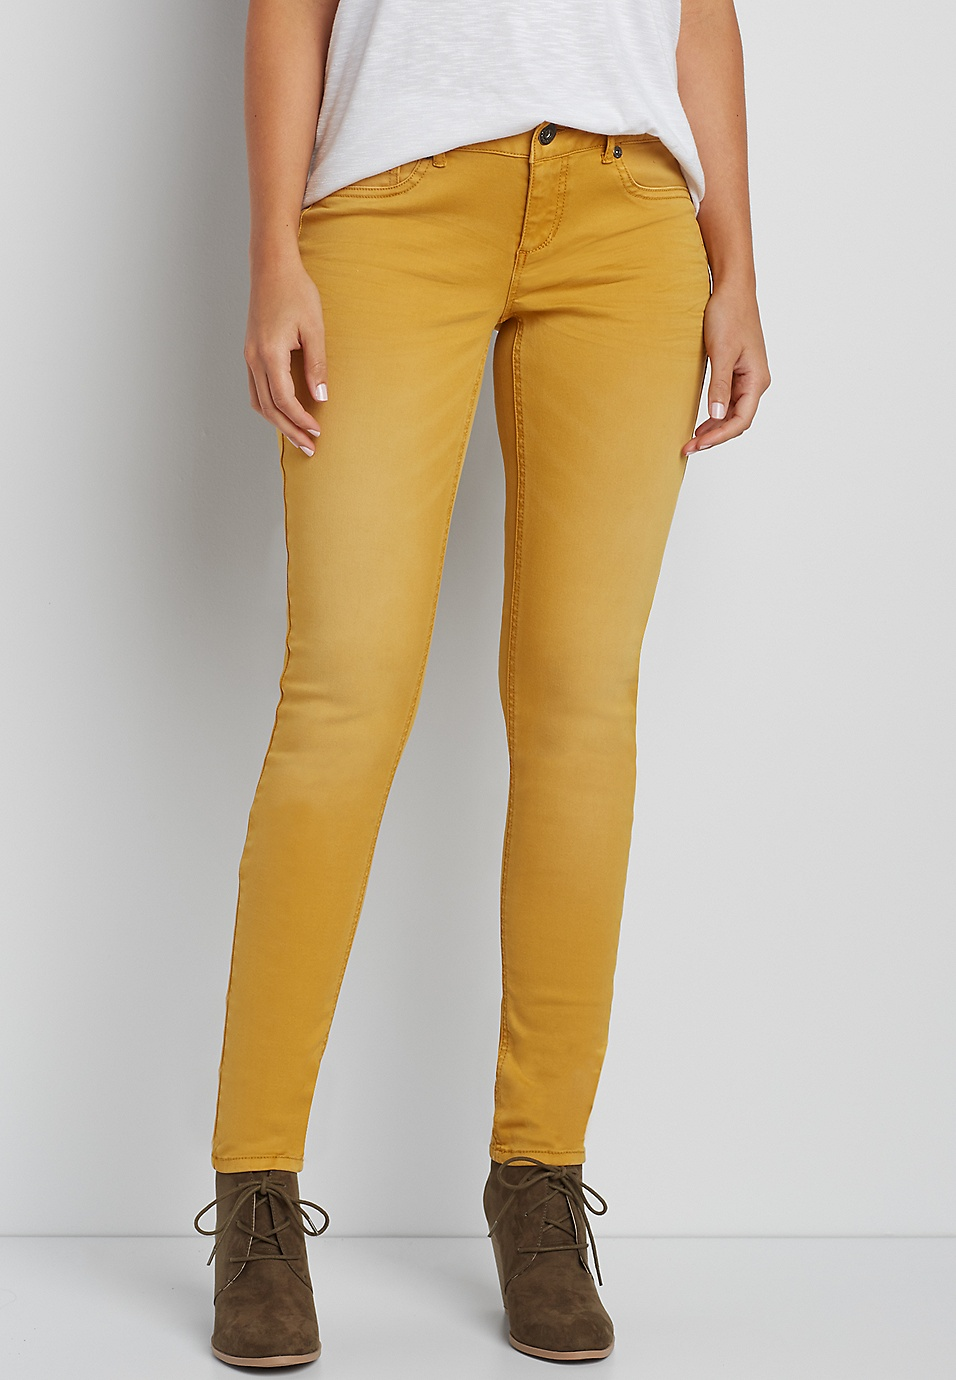 27d4159b1d3 DenimFlex™ jegging in autumn gold